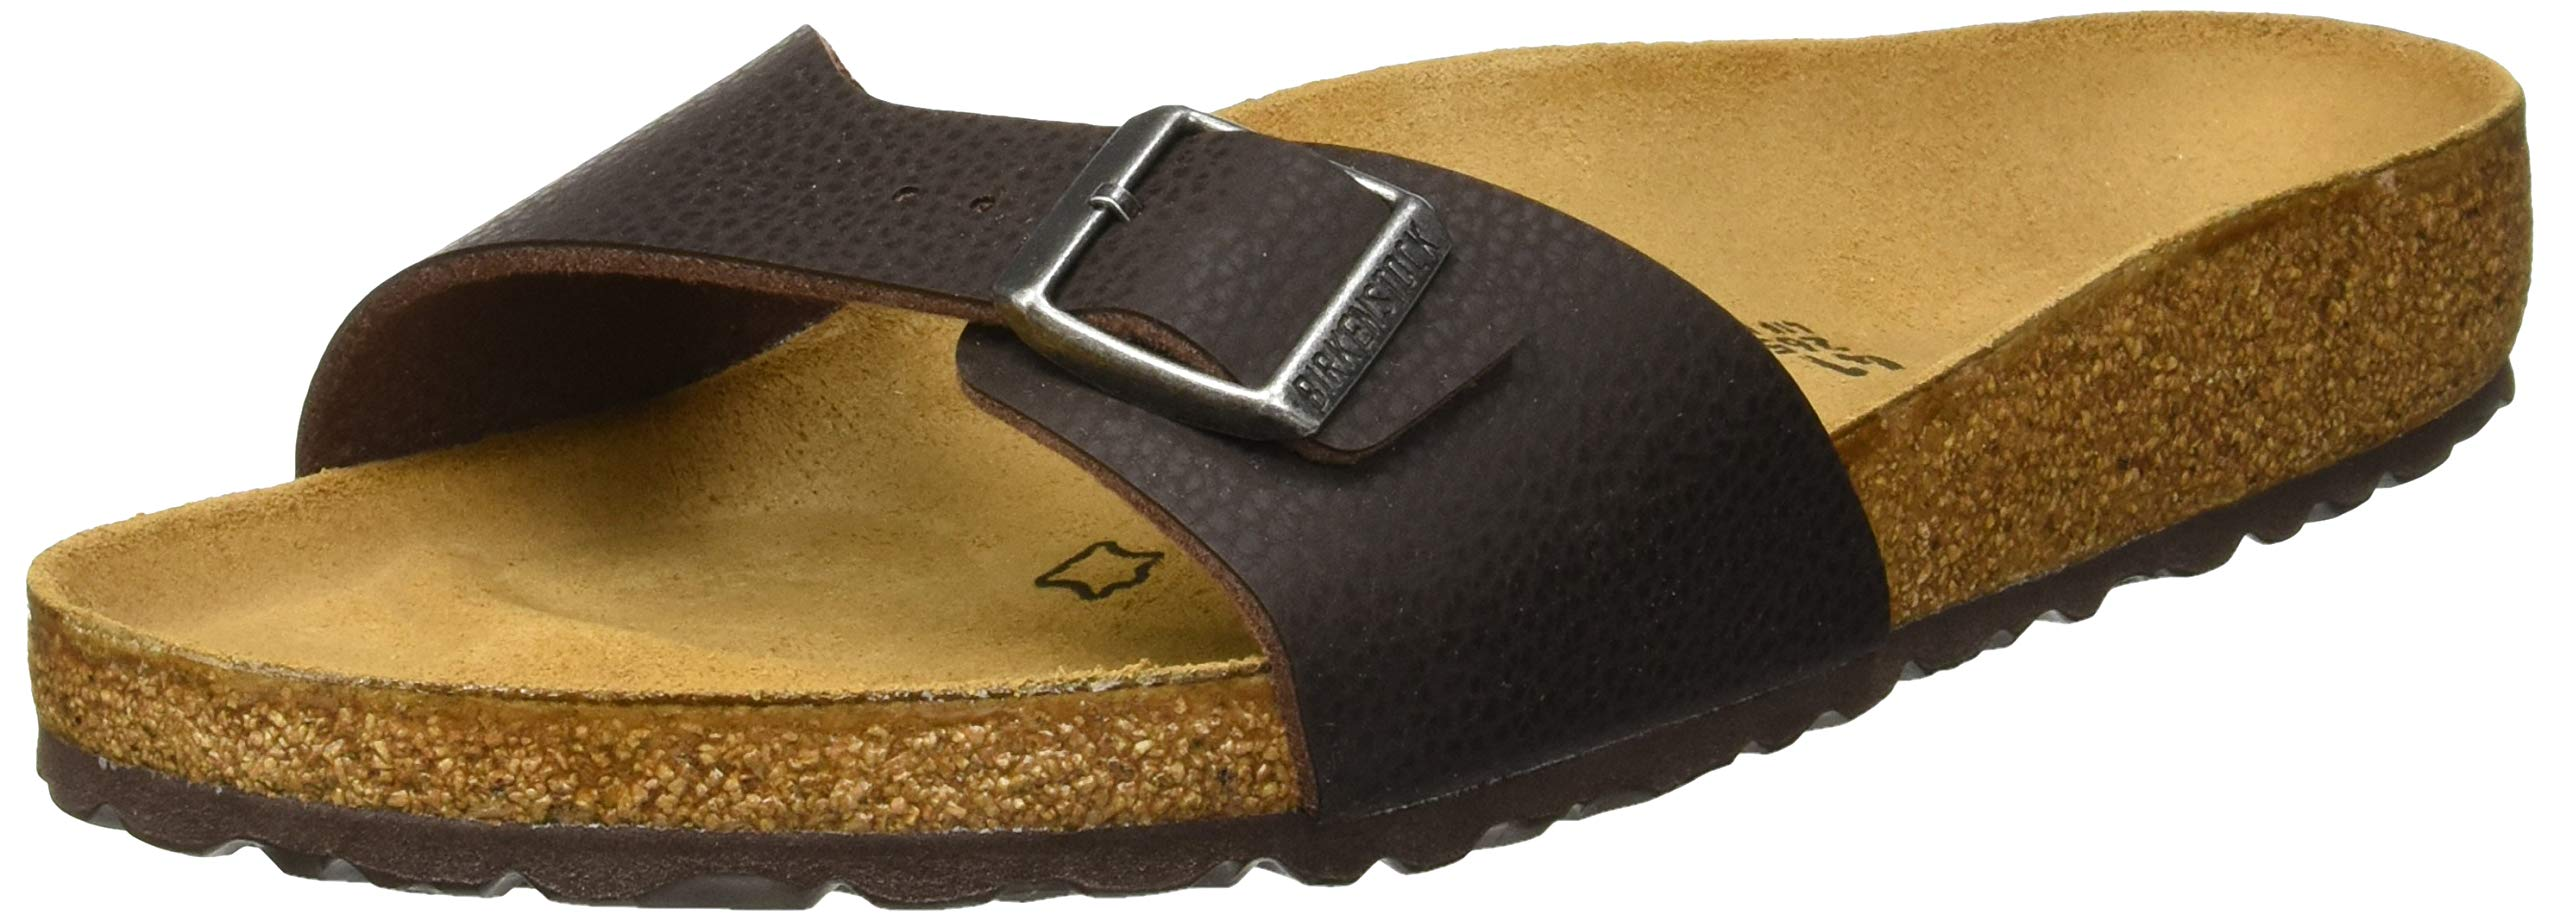 2567a4dfc37 Birkenstock Madrid - Claquettes - Homme product image